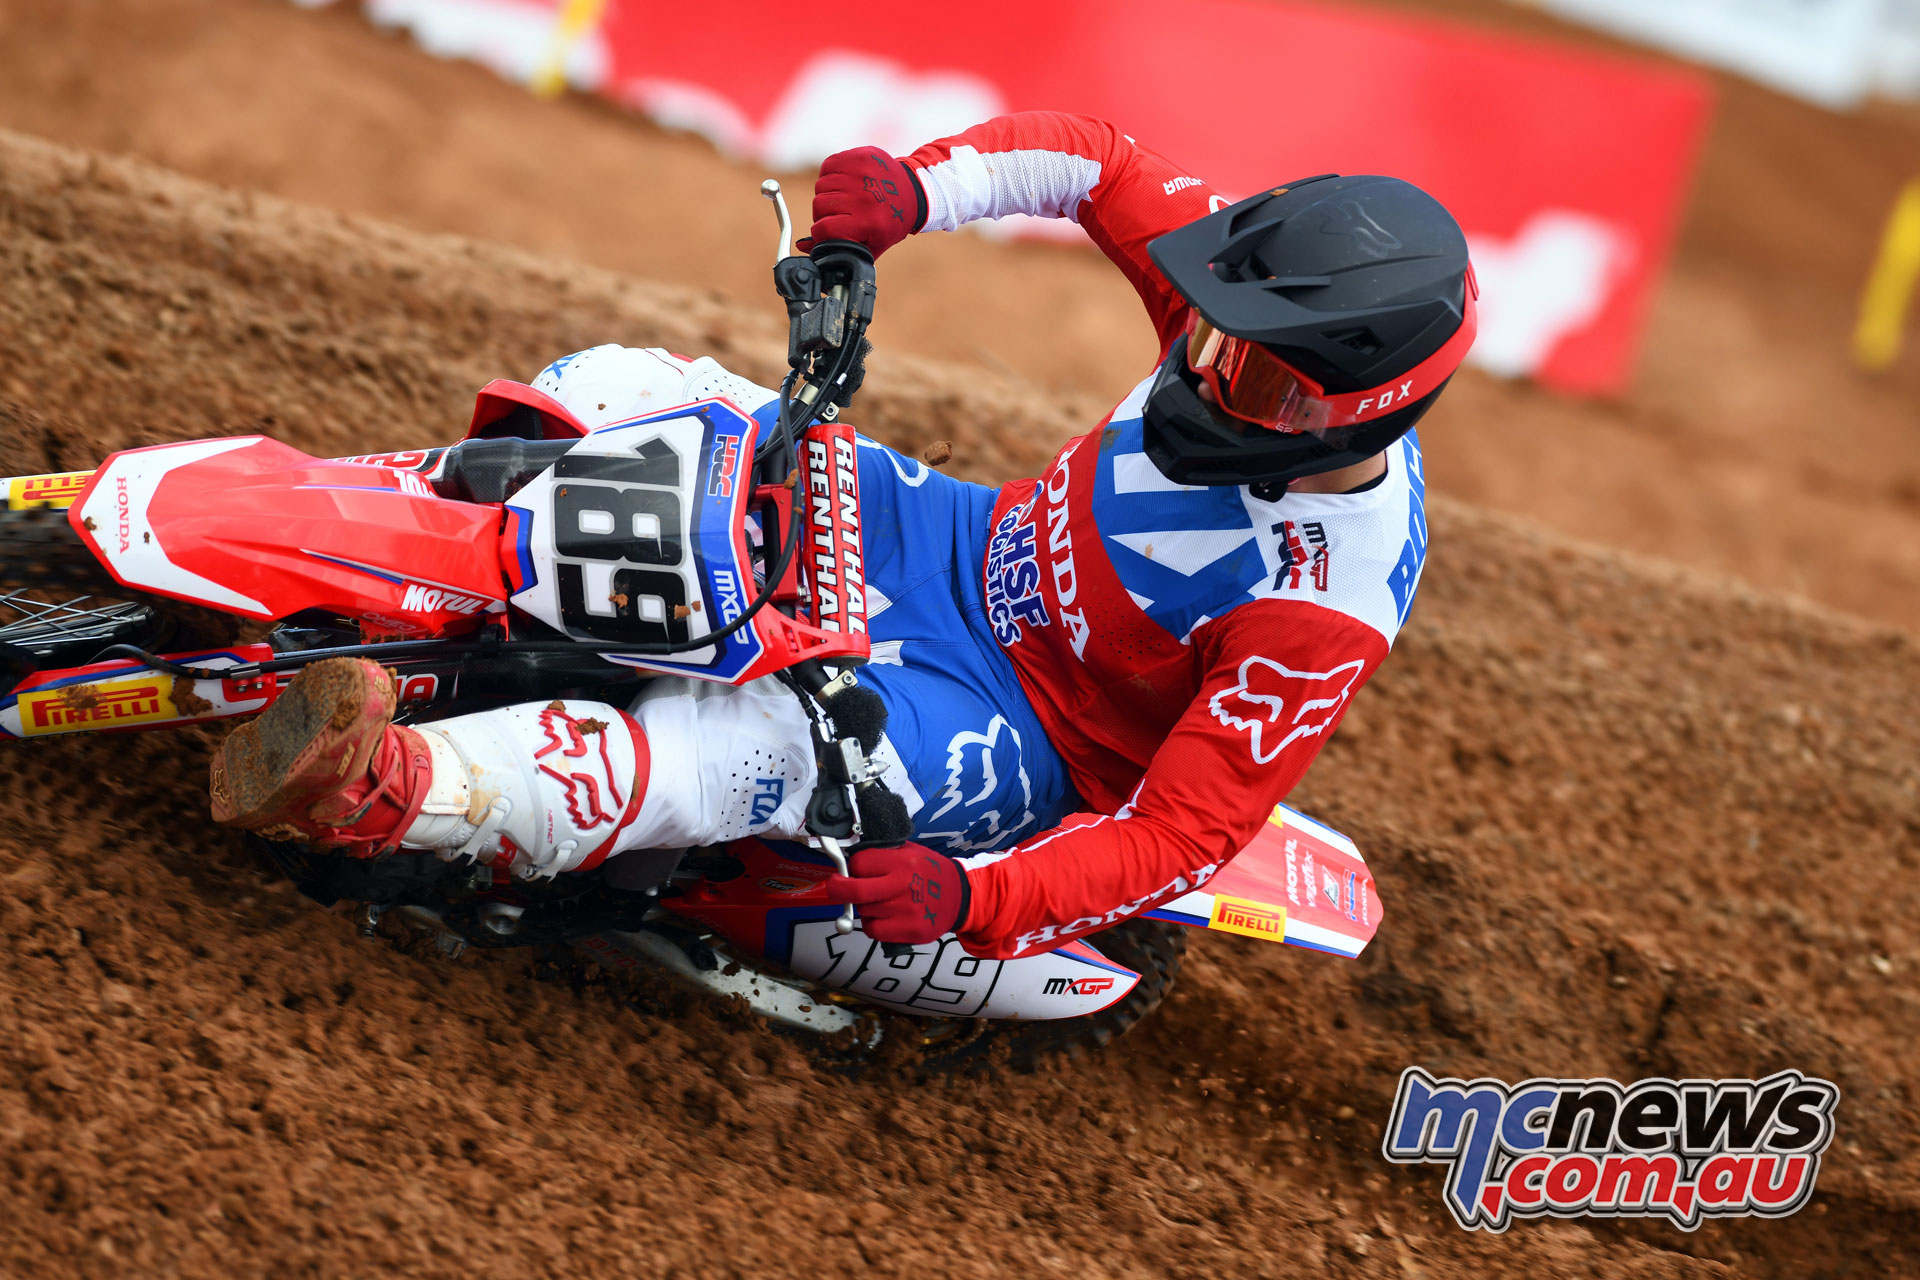 MXGP Indonesia MX Bogers action